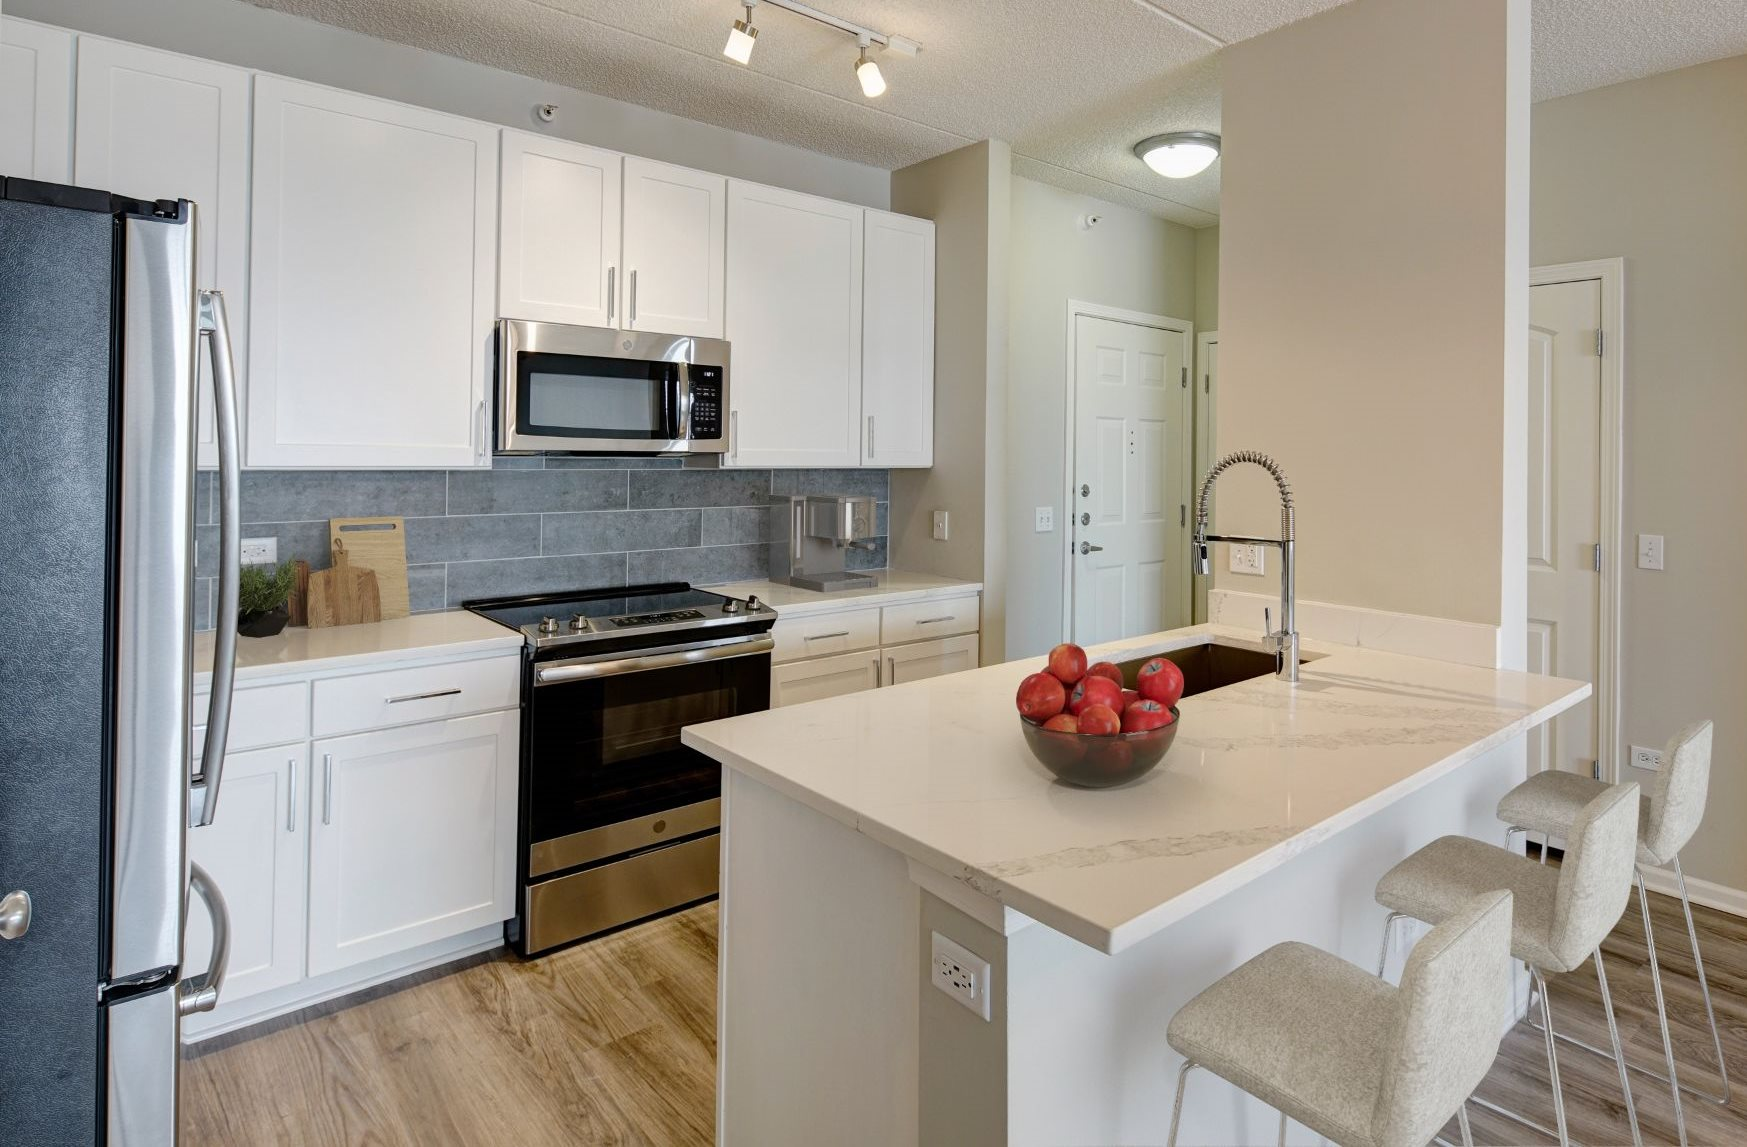 Fitted Kitchen With Island Dining at The MilTon Luxury Apartments, Vernon Hills, Illinois